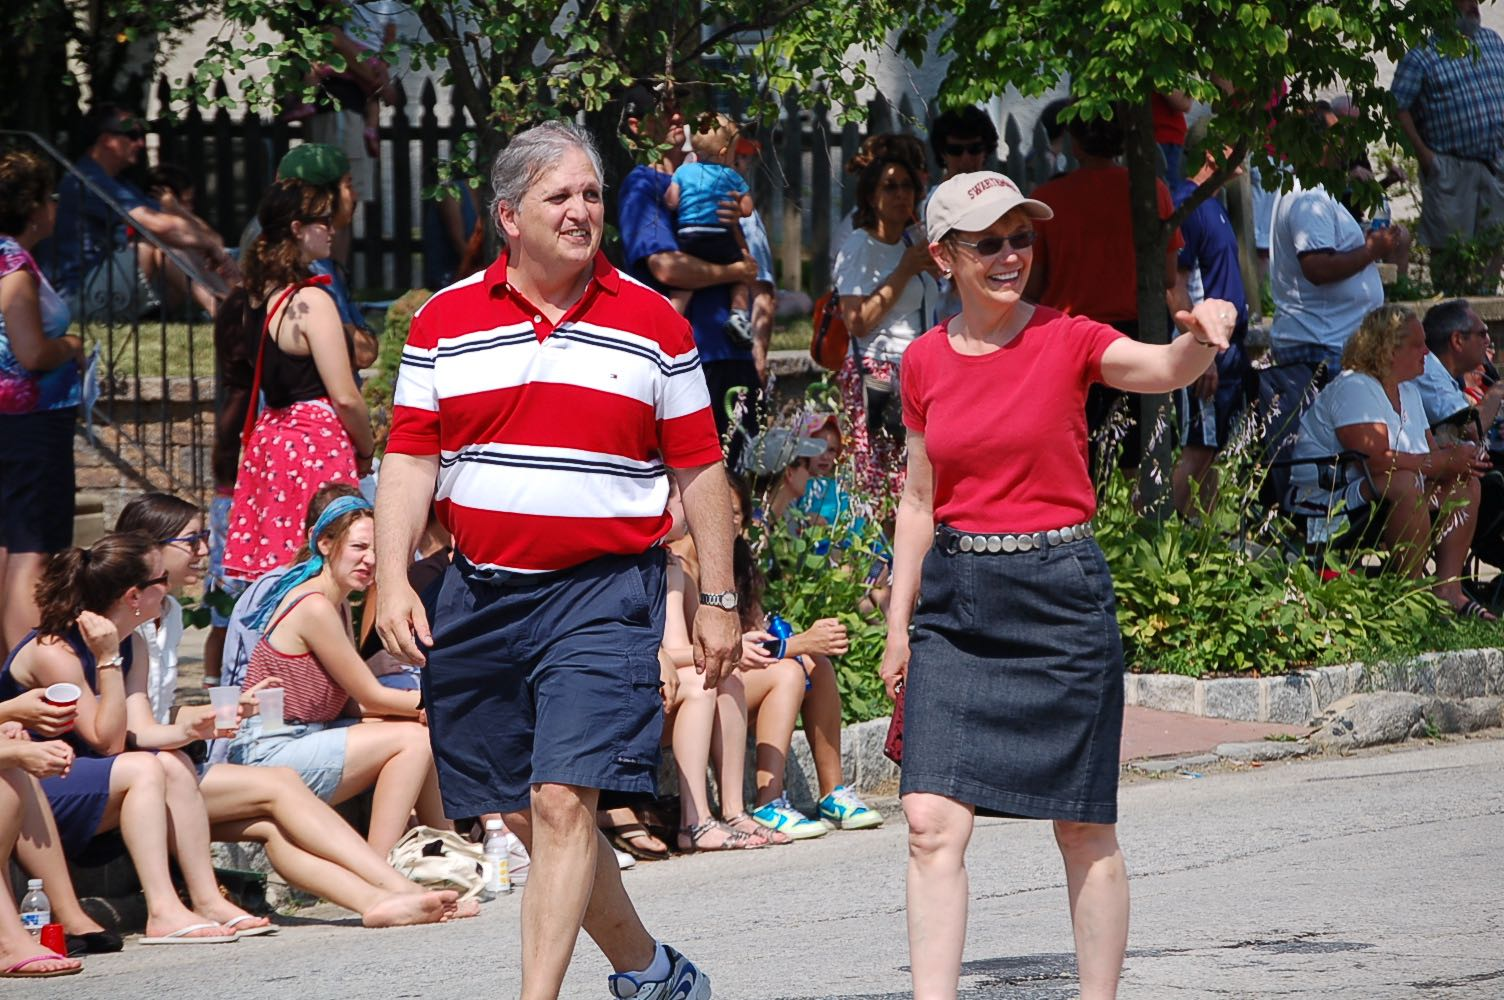 The Fourth of July Parade in Swarthmore with Swarthmore College's then-president Rebecca Chopp.